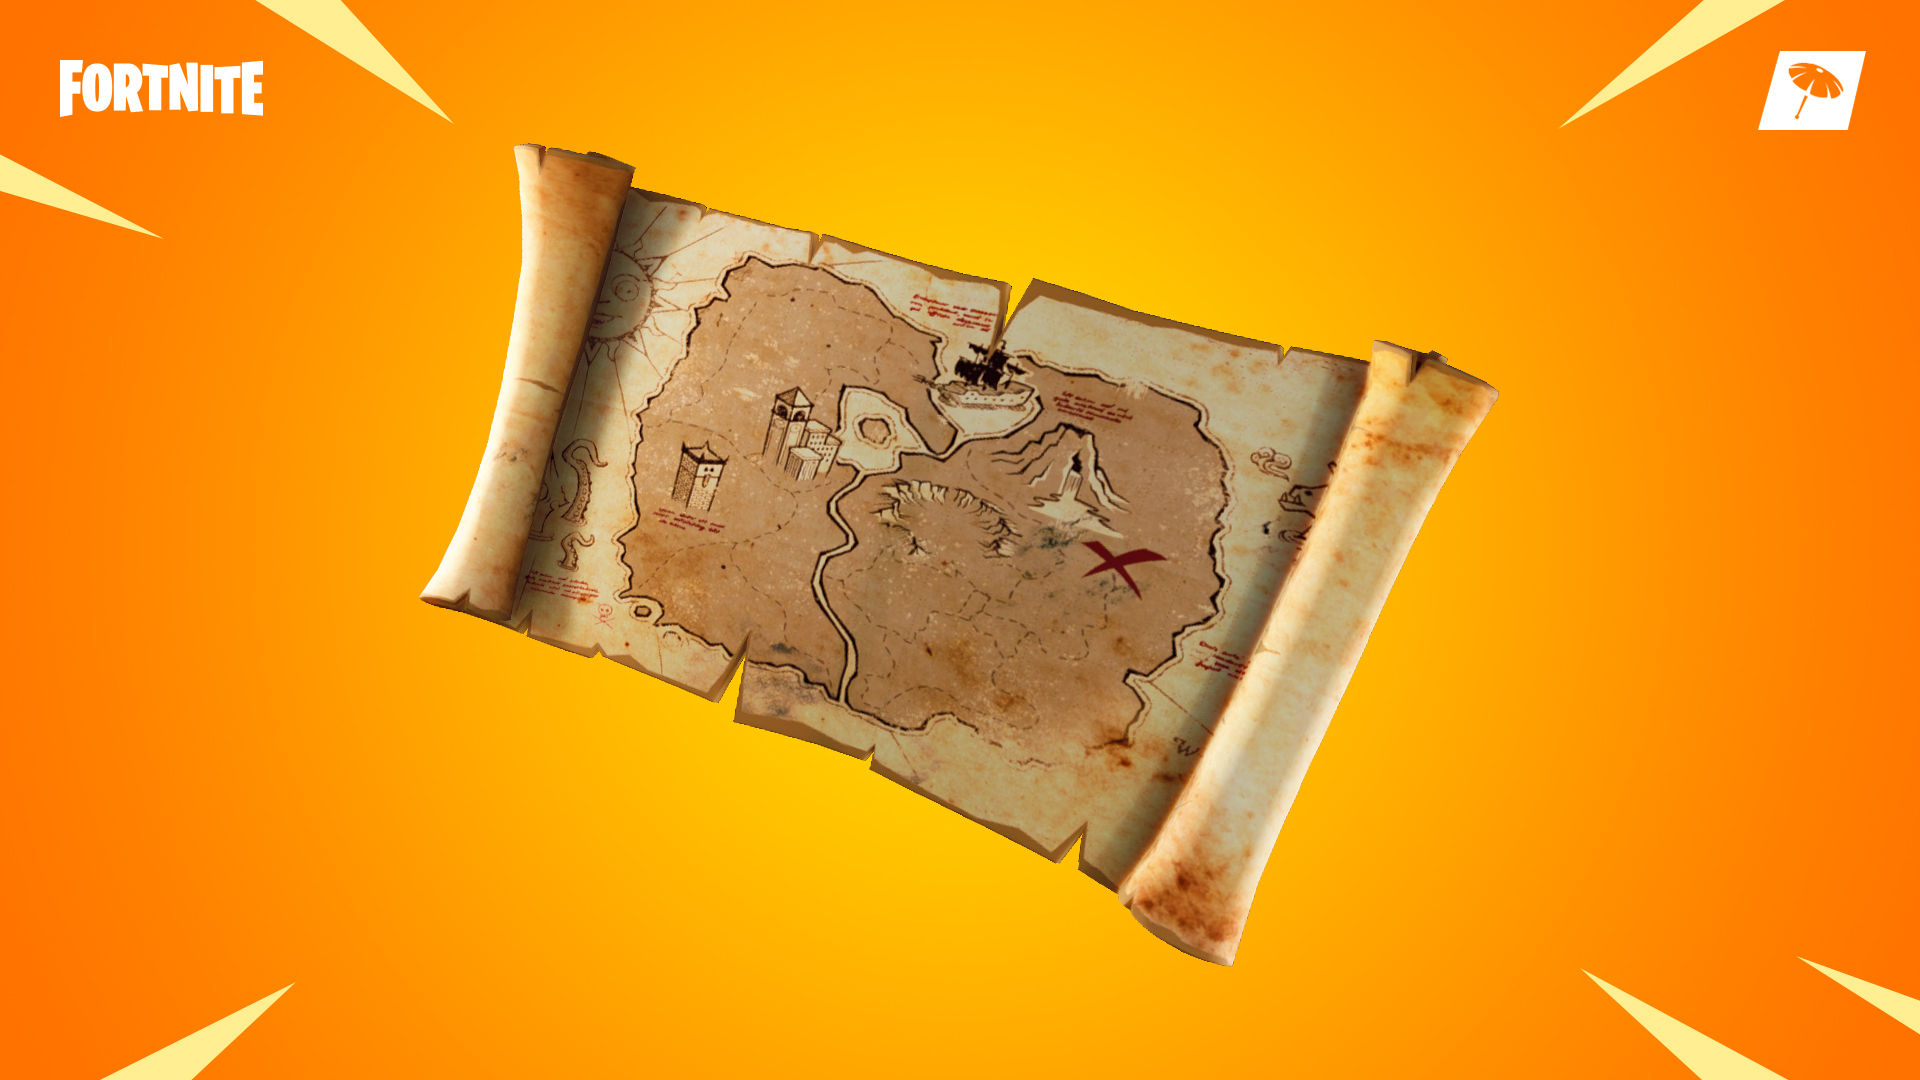 Fortnite: where to find the buried treasure